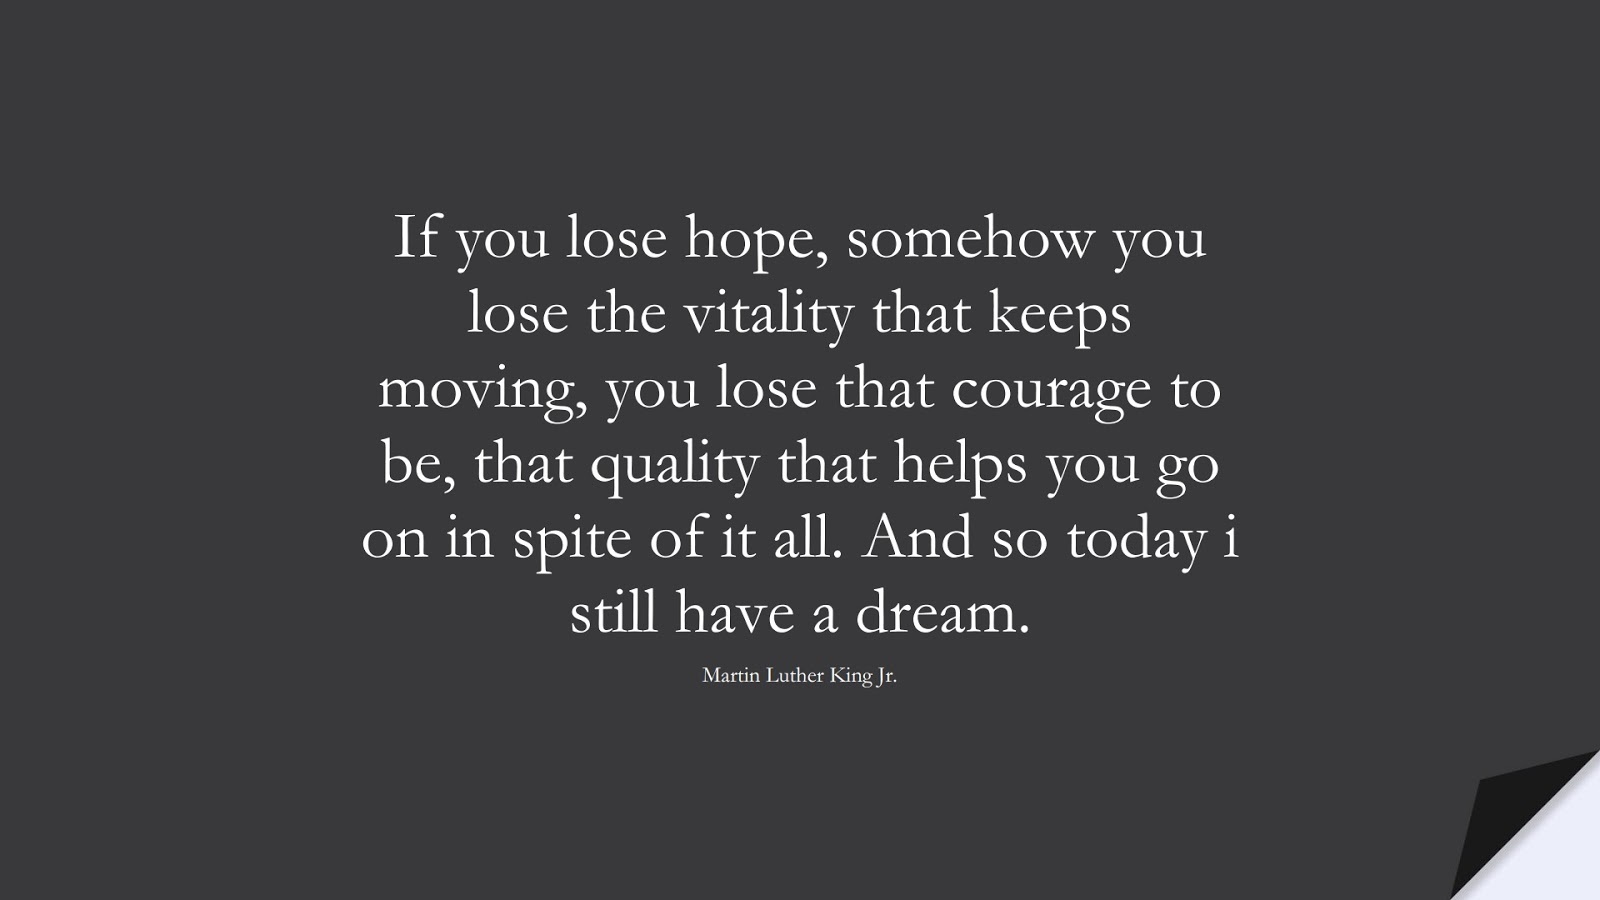 If you lose hope, somehow you lose the vitality that keeps moving, you lose that courage to be, that quality that helps you go on in spite of it all. And so today i still have a dream. (Martin Luther King Jr.);  #HopeQuotes